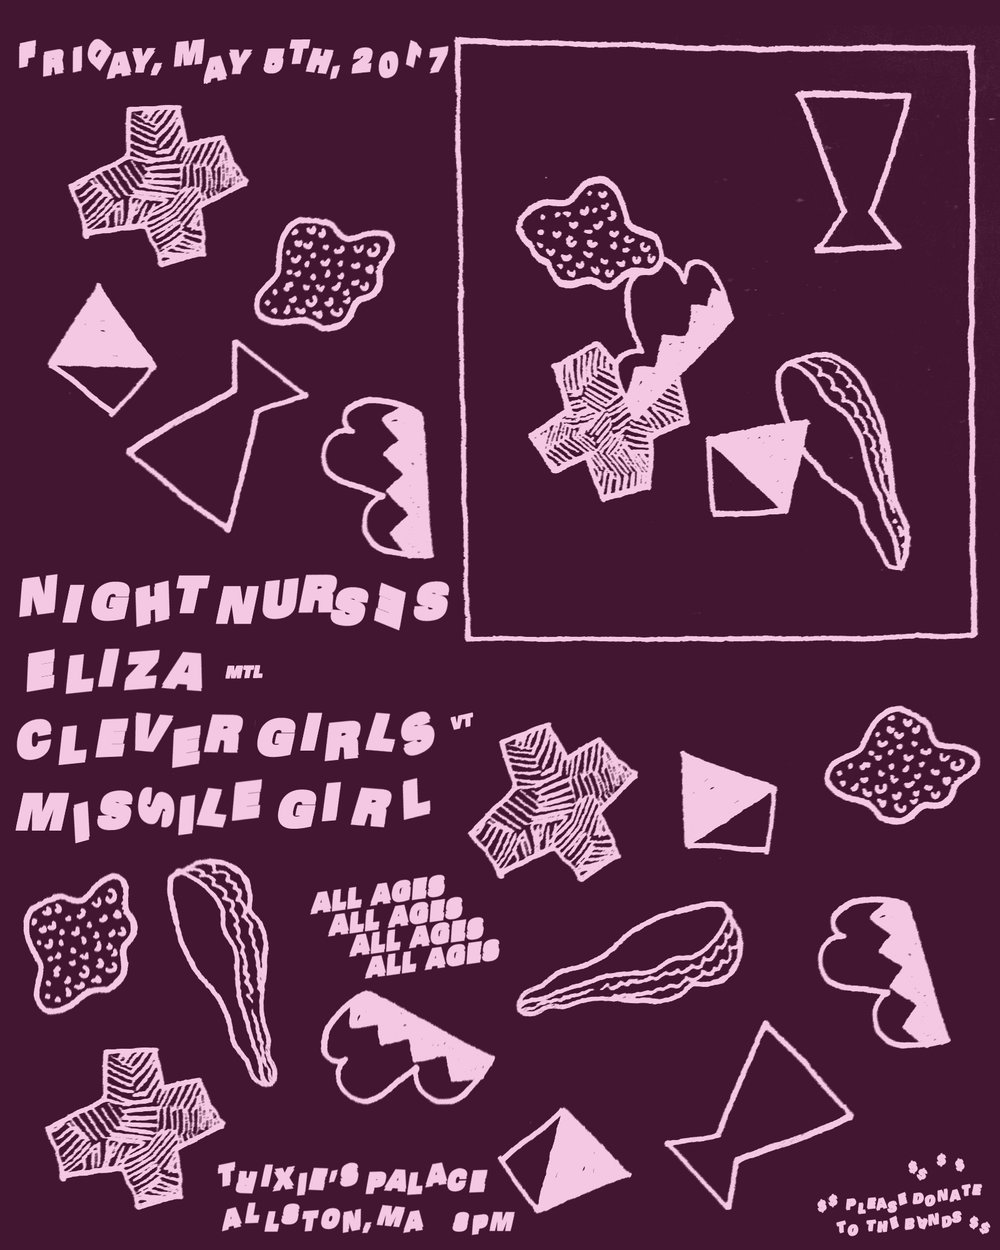 Flyer-NightNurses55-Purplish copy.jpg